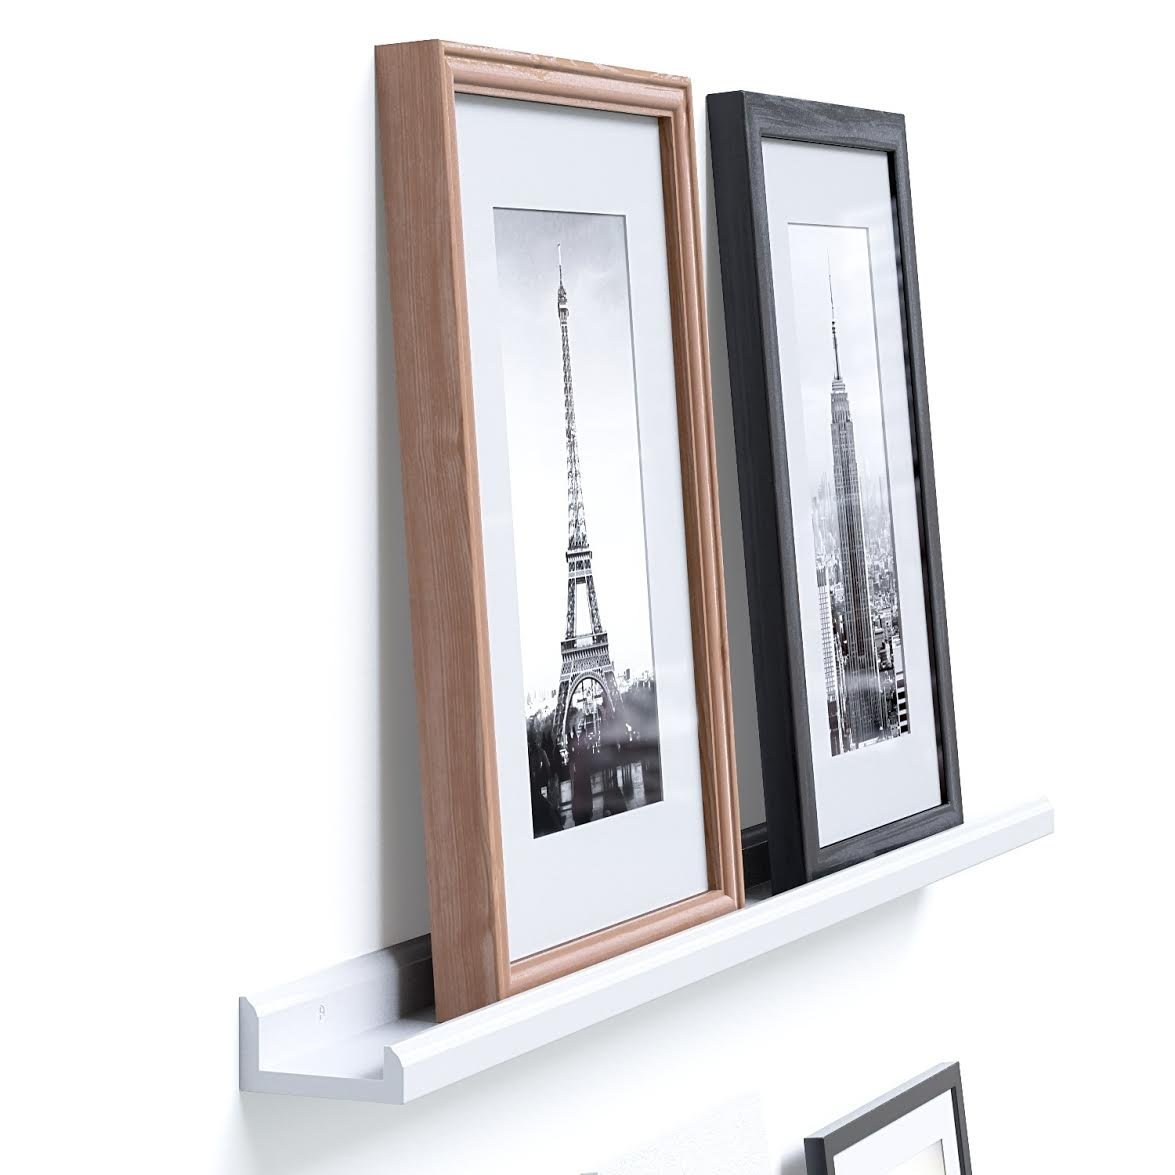 amazoncom boston floating wall shelf ledge for picture frames book display 46 inches long white home u0026 kitchen